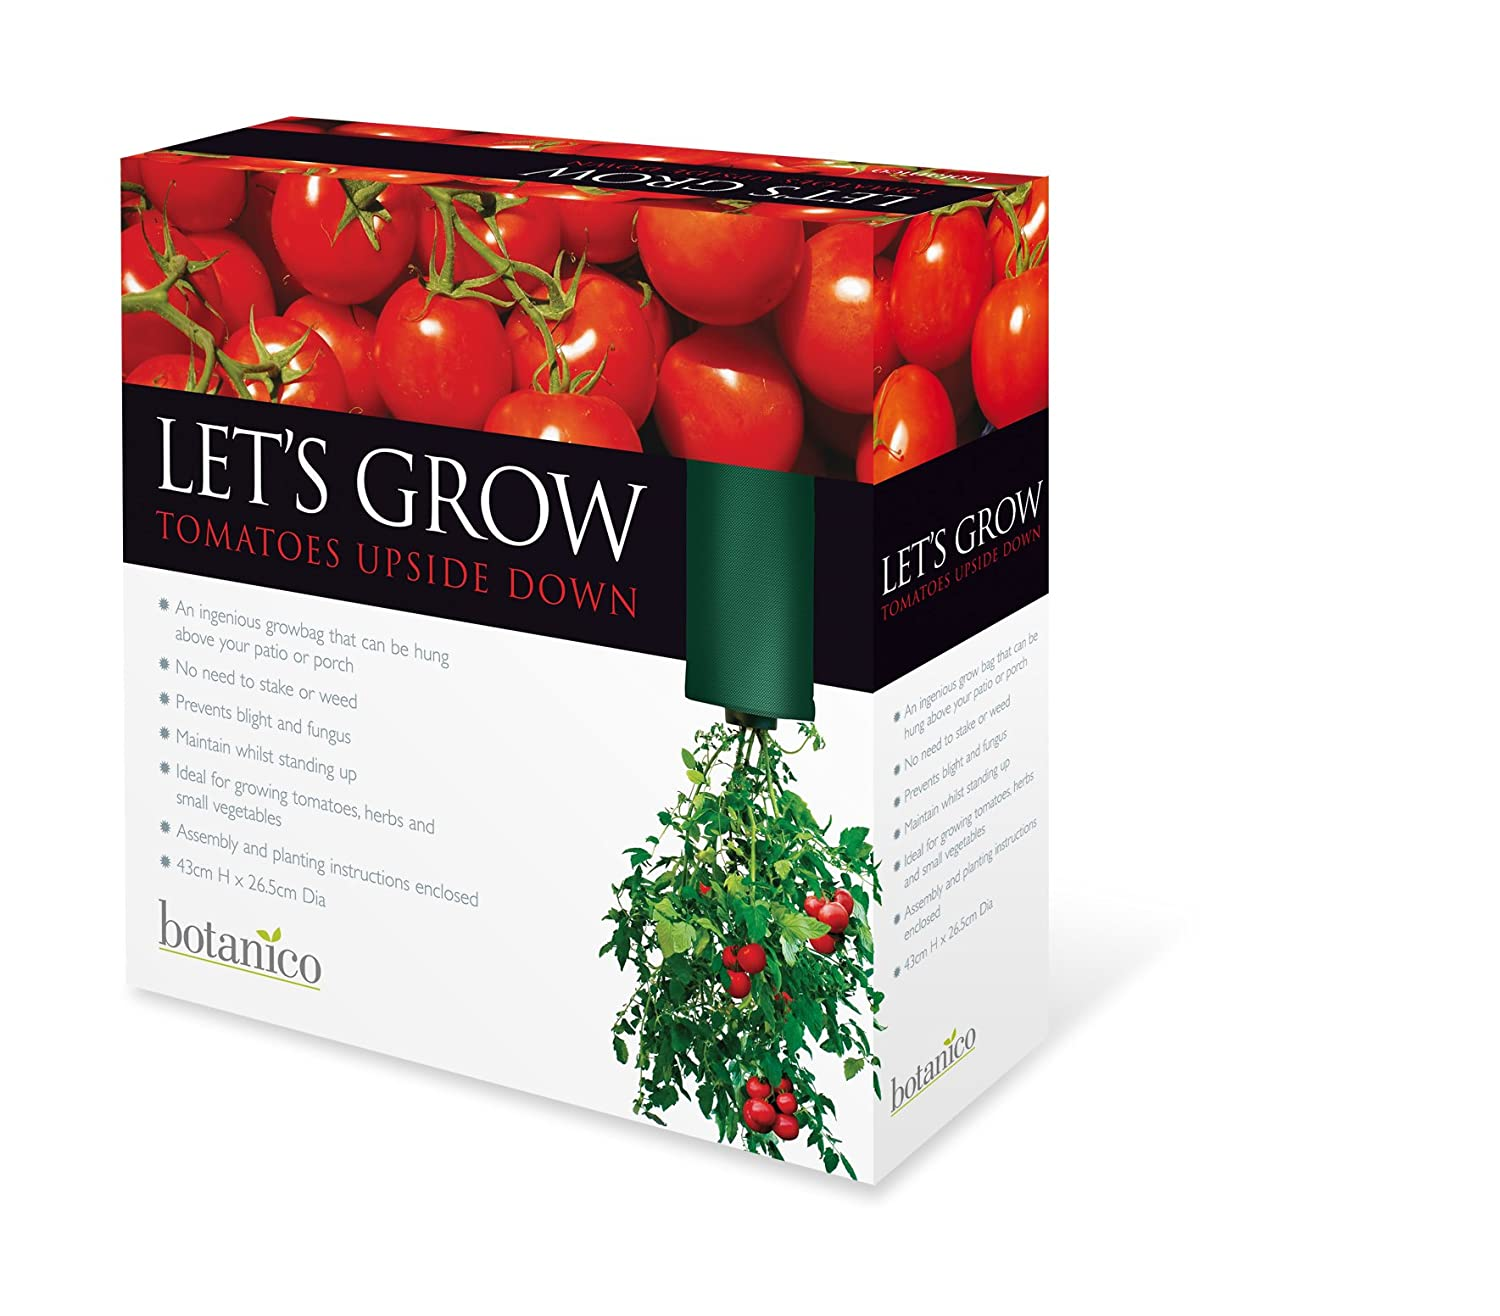 Upside Down Tomato Planter Amazon Garden & Outdoors